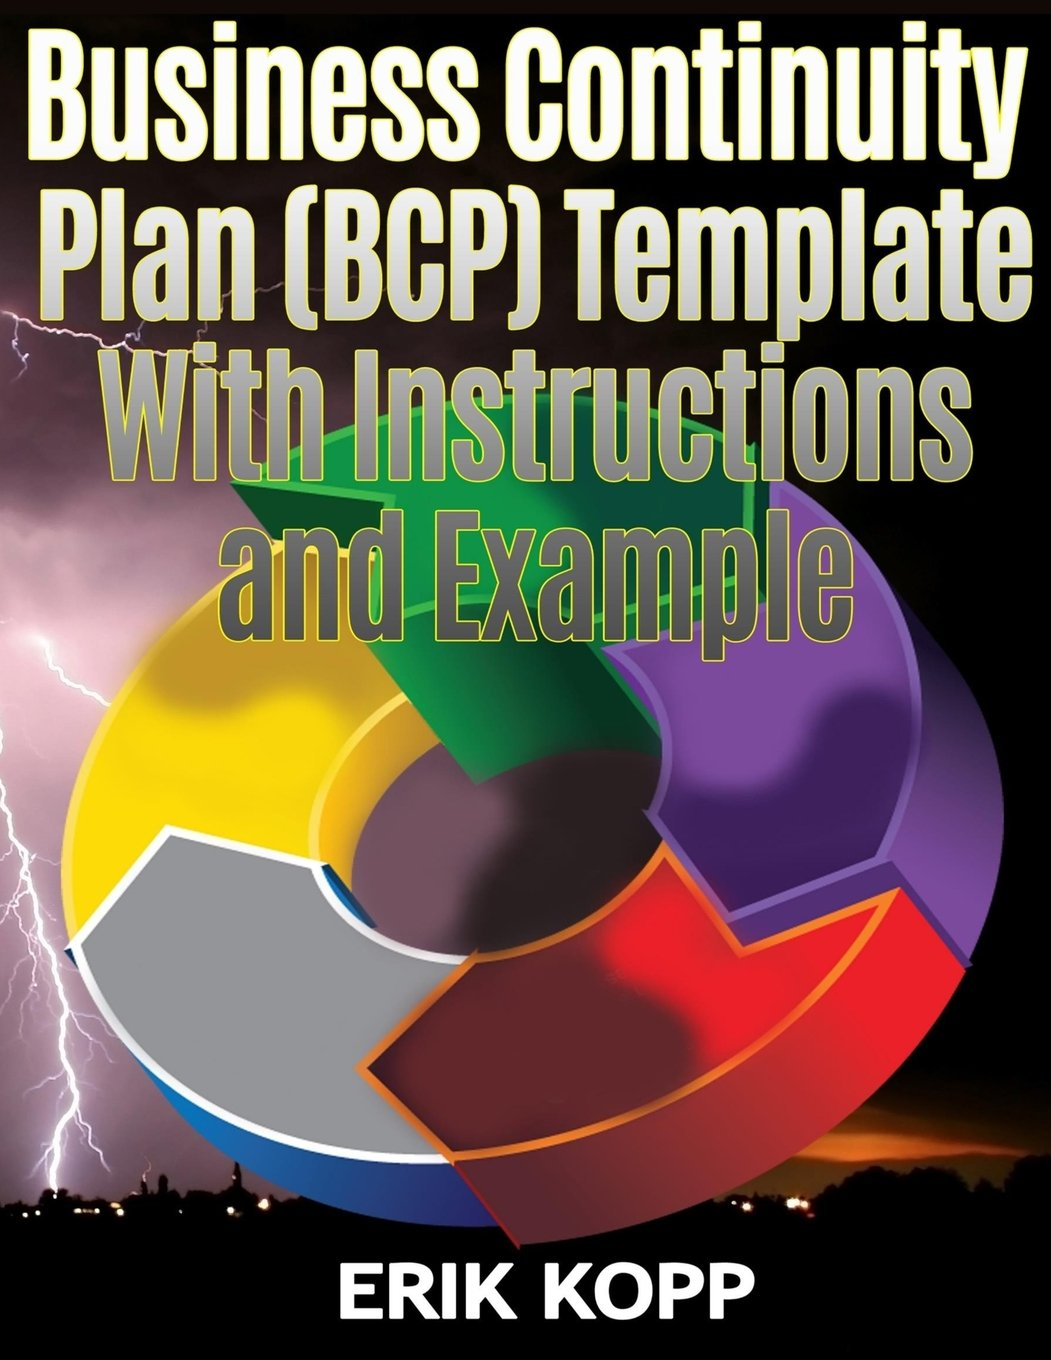 Business Continuity Plan BCP Template With Instructions And - Free business continuity plan template